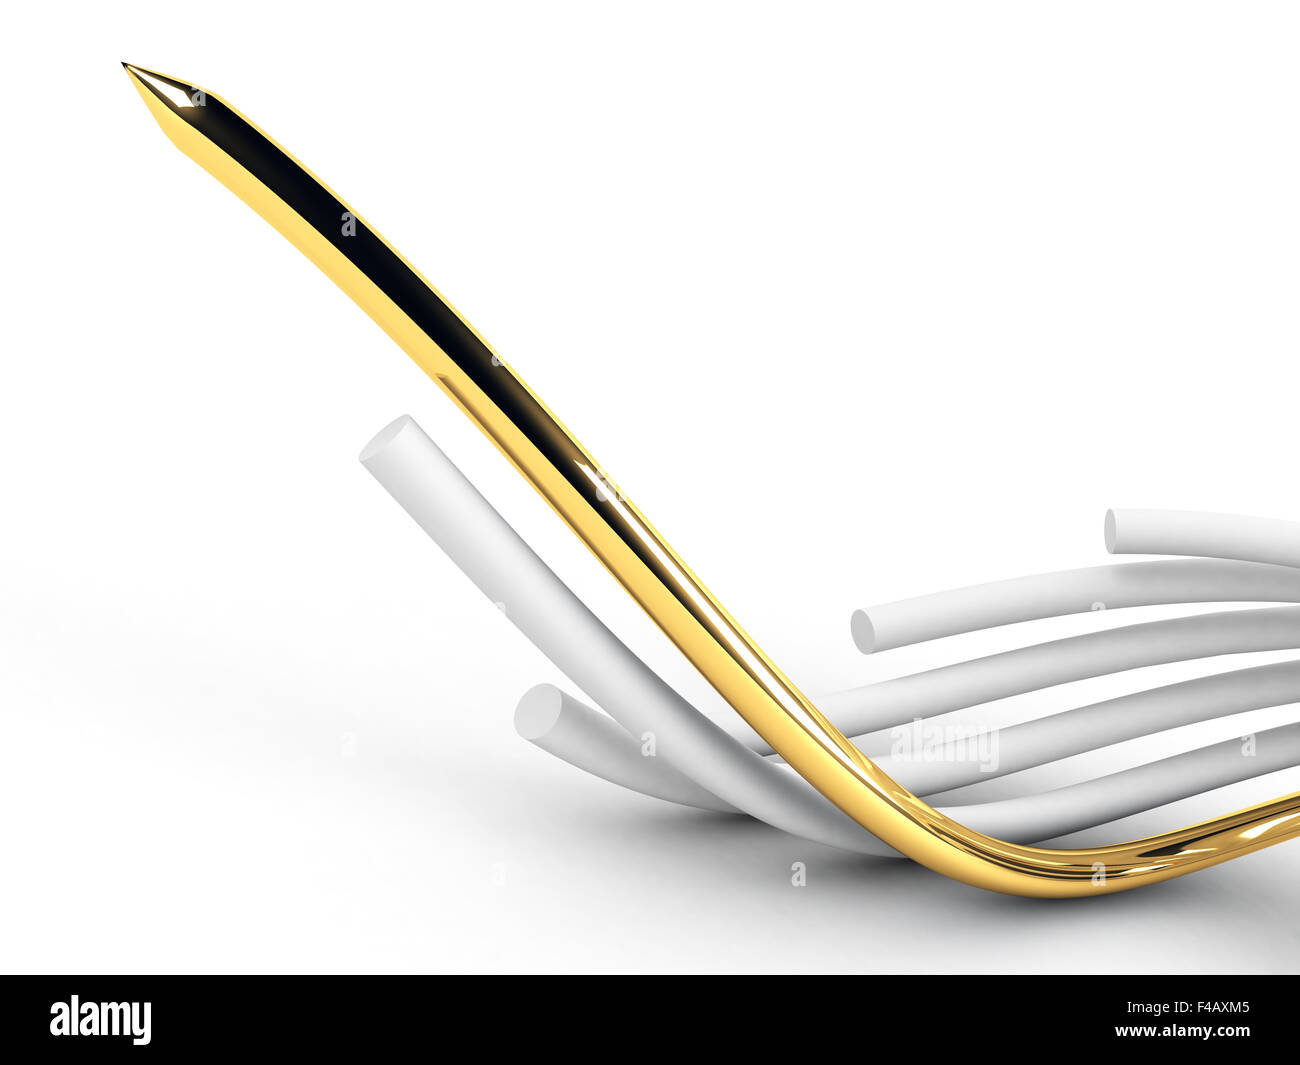 gold leading cable - Stock Image